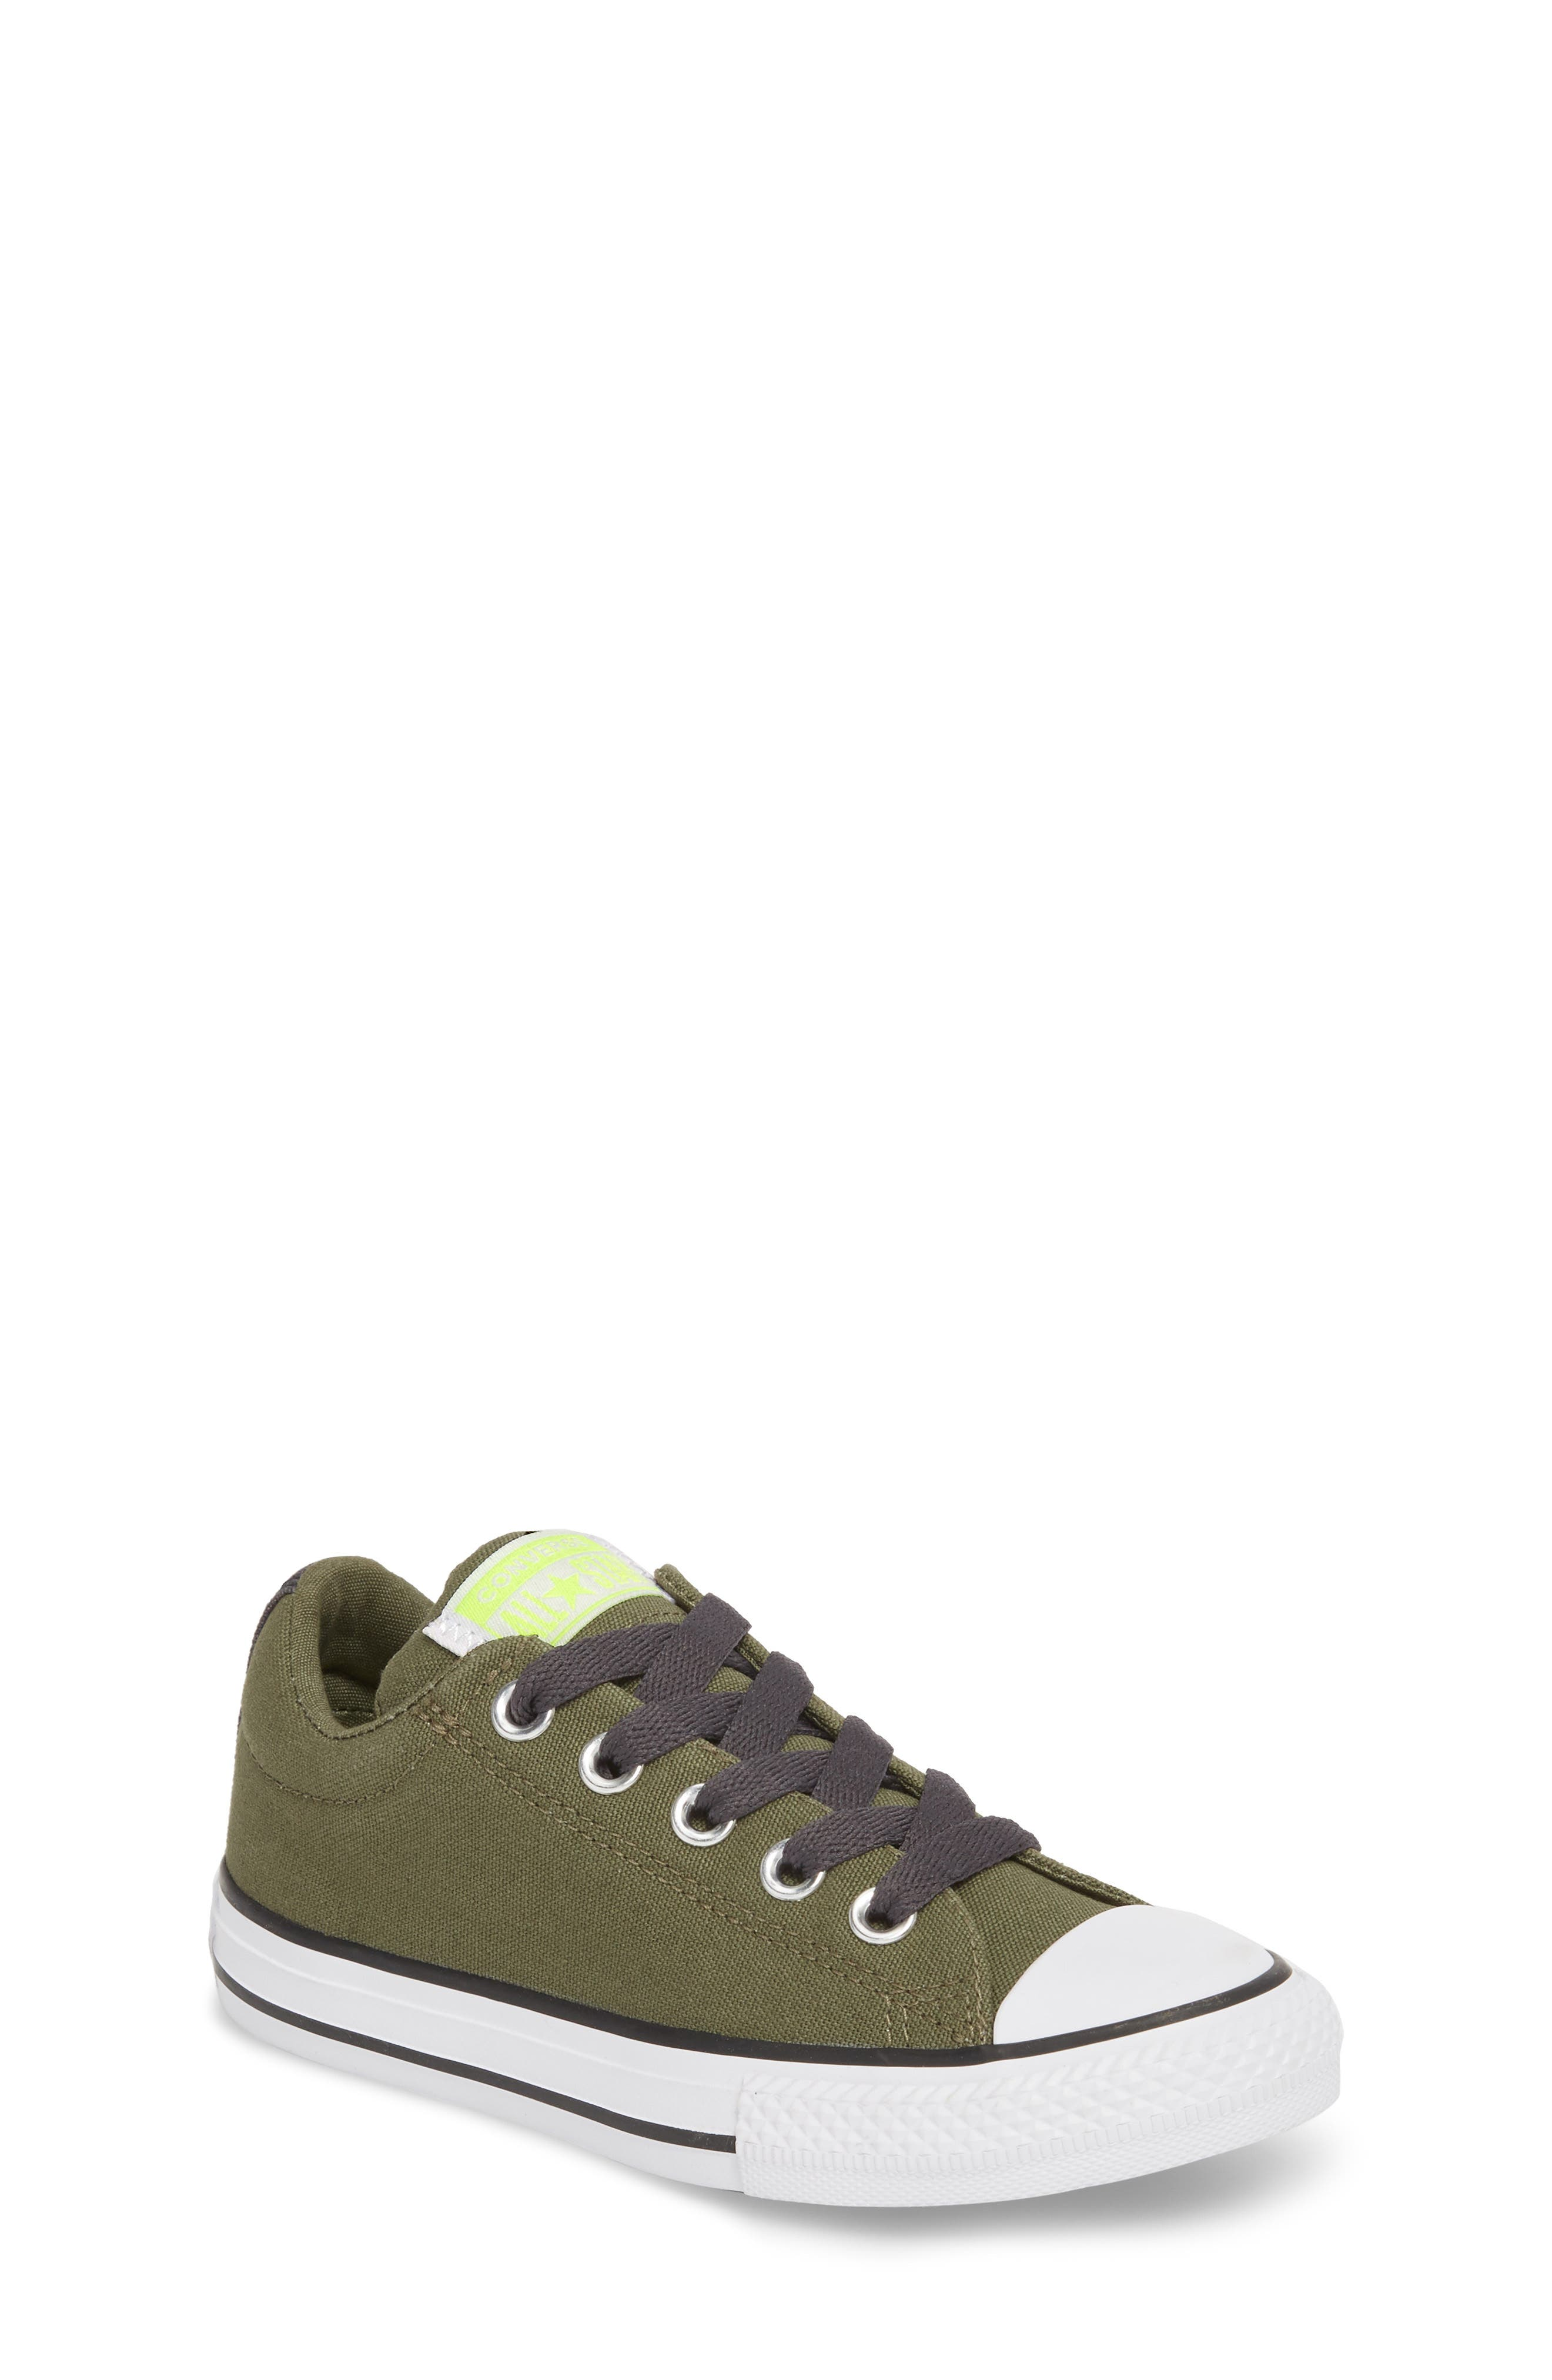 Chuck Taylor<sup>®</sup> All Star<sup>®</sup> Street Slip Low Top Sneaker,                         Main,                         color, 322